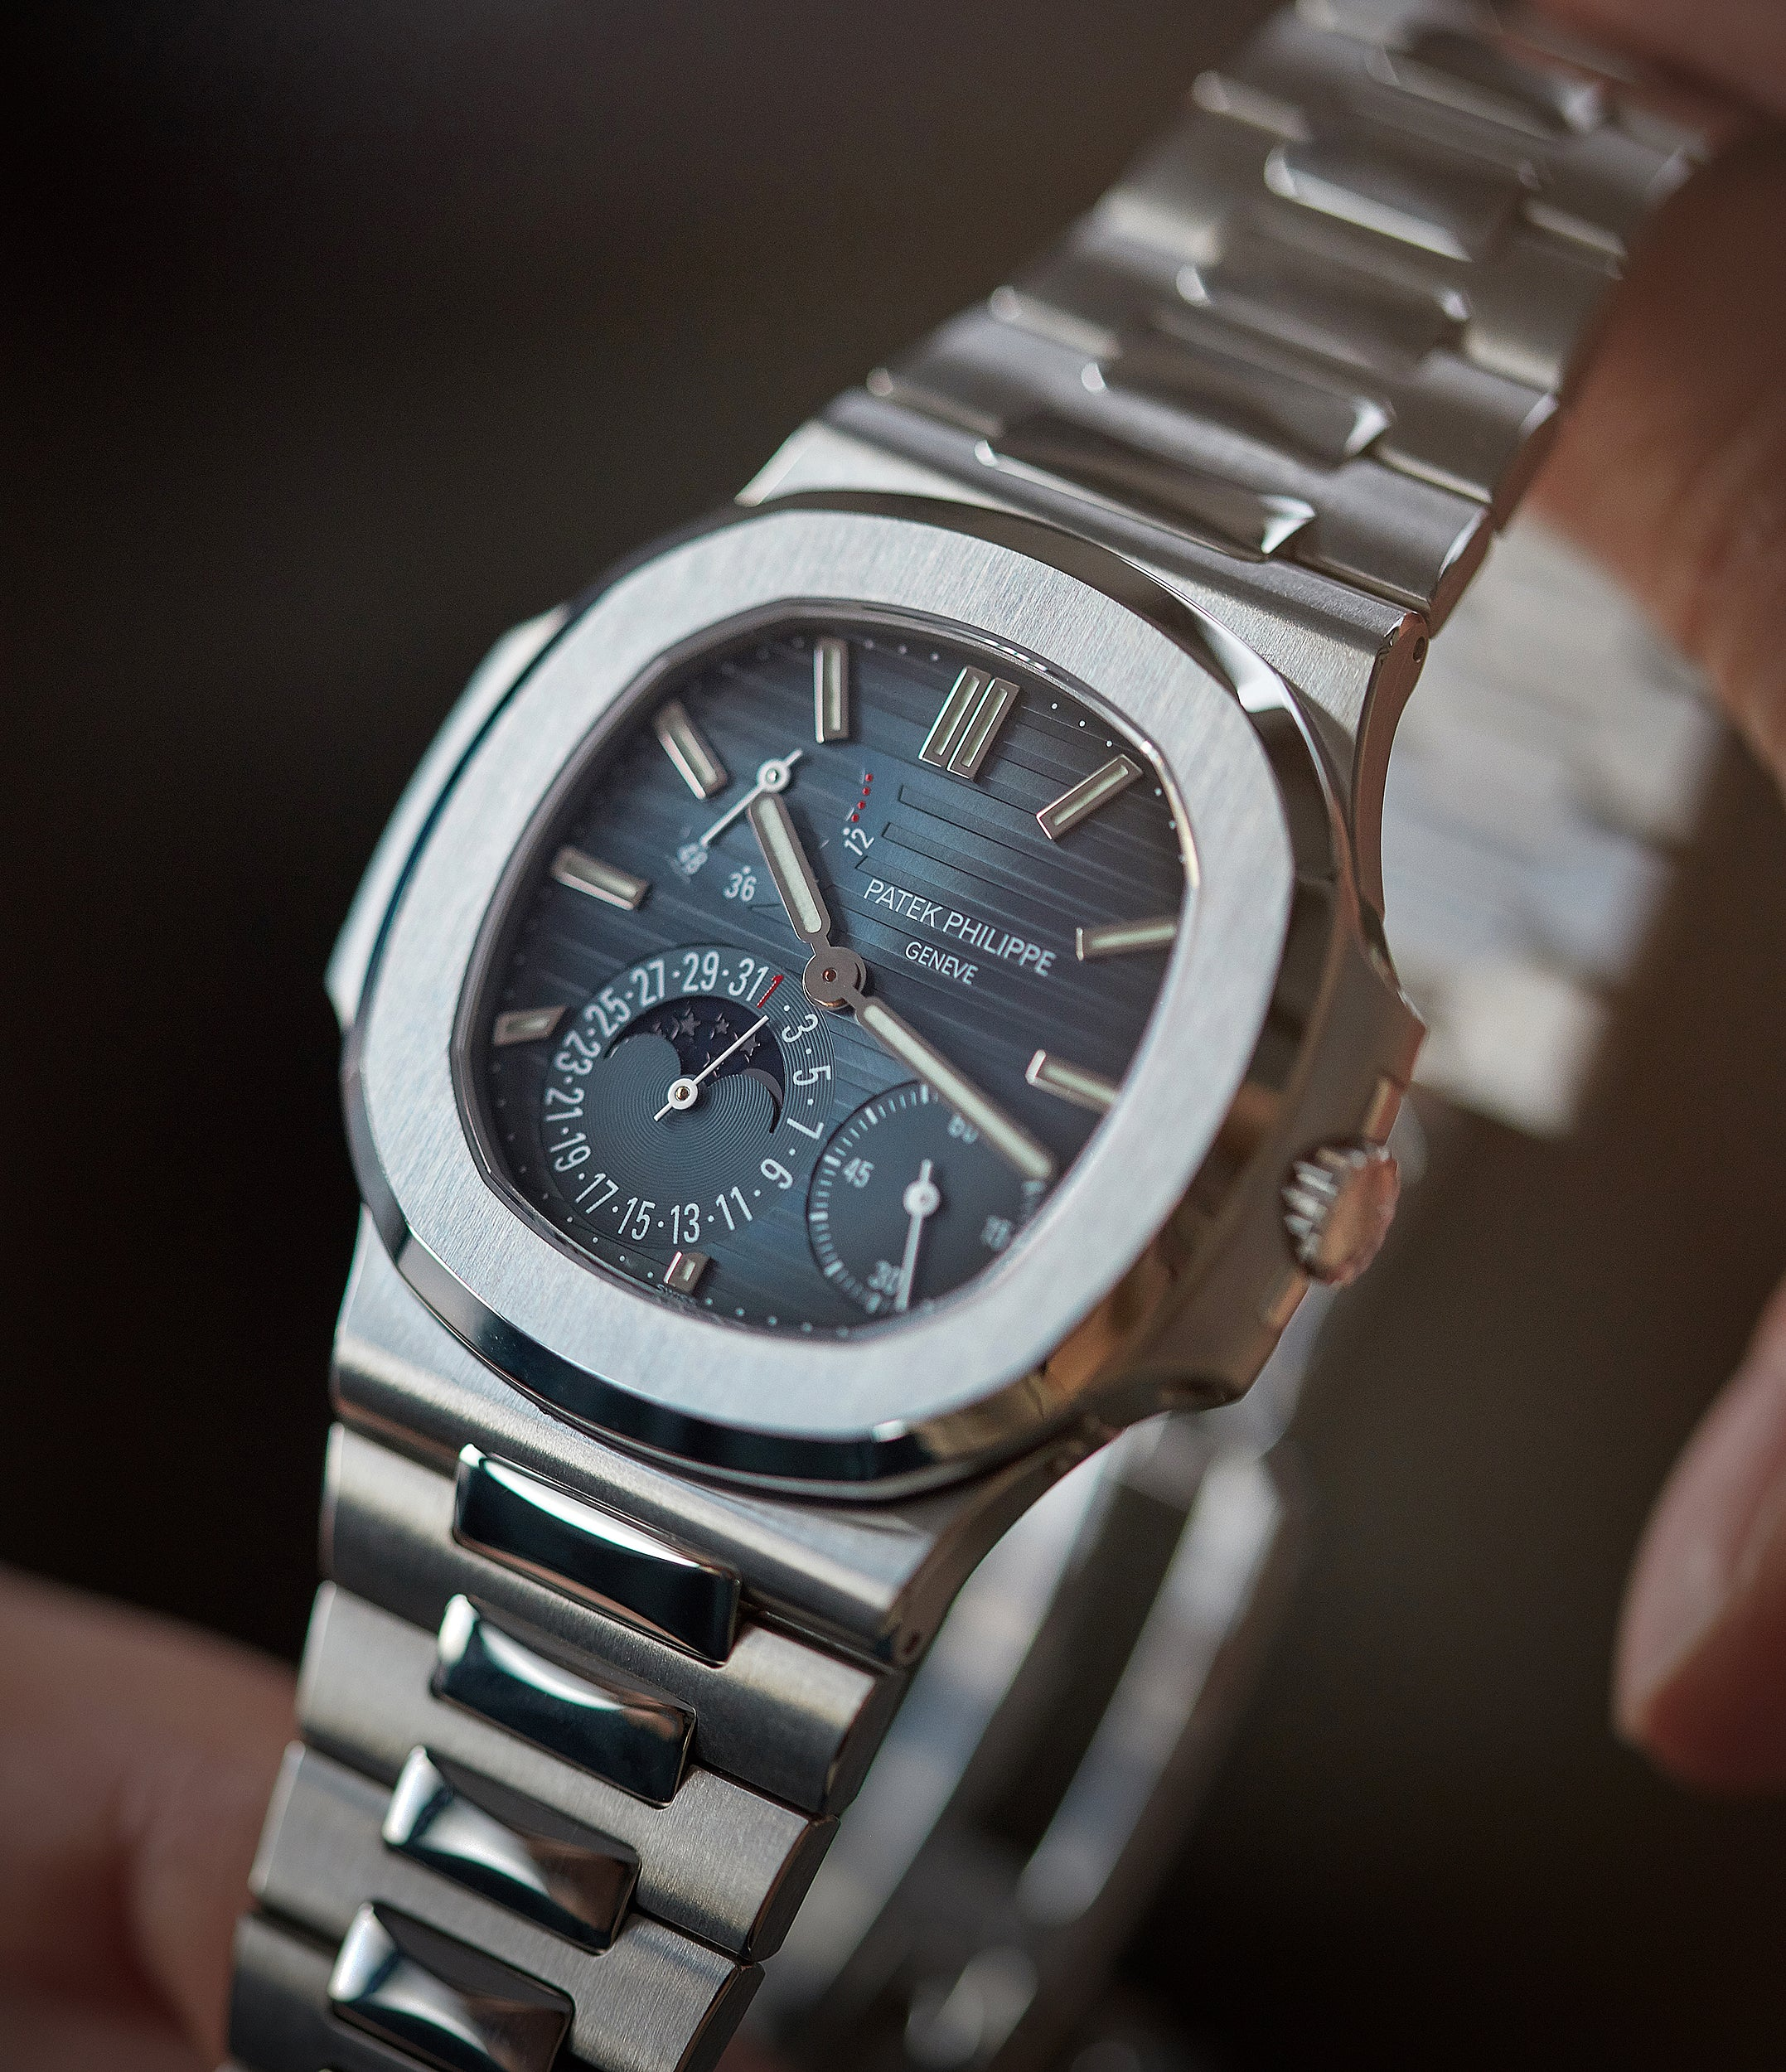 5712 Patek Philippe Nautilus Moon Phase steel pre-owned watch for sale online at A Collected Man London UK specialist of rare watches